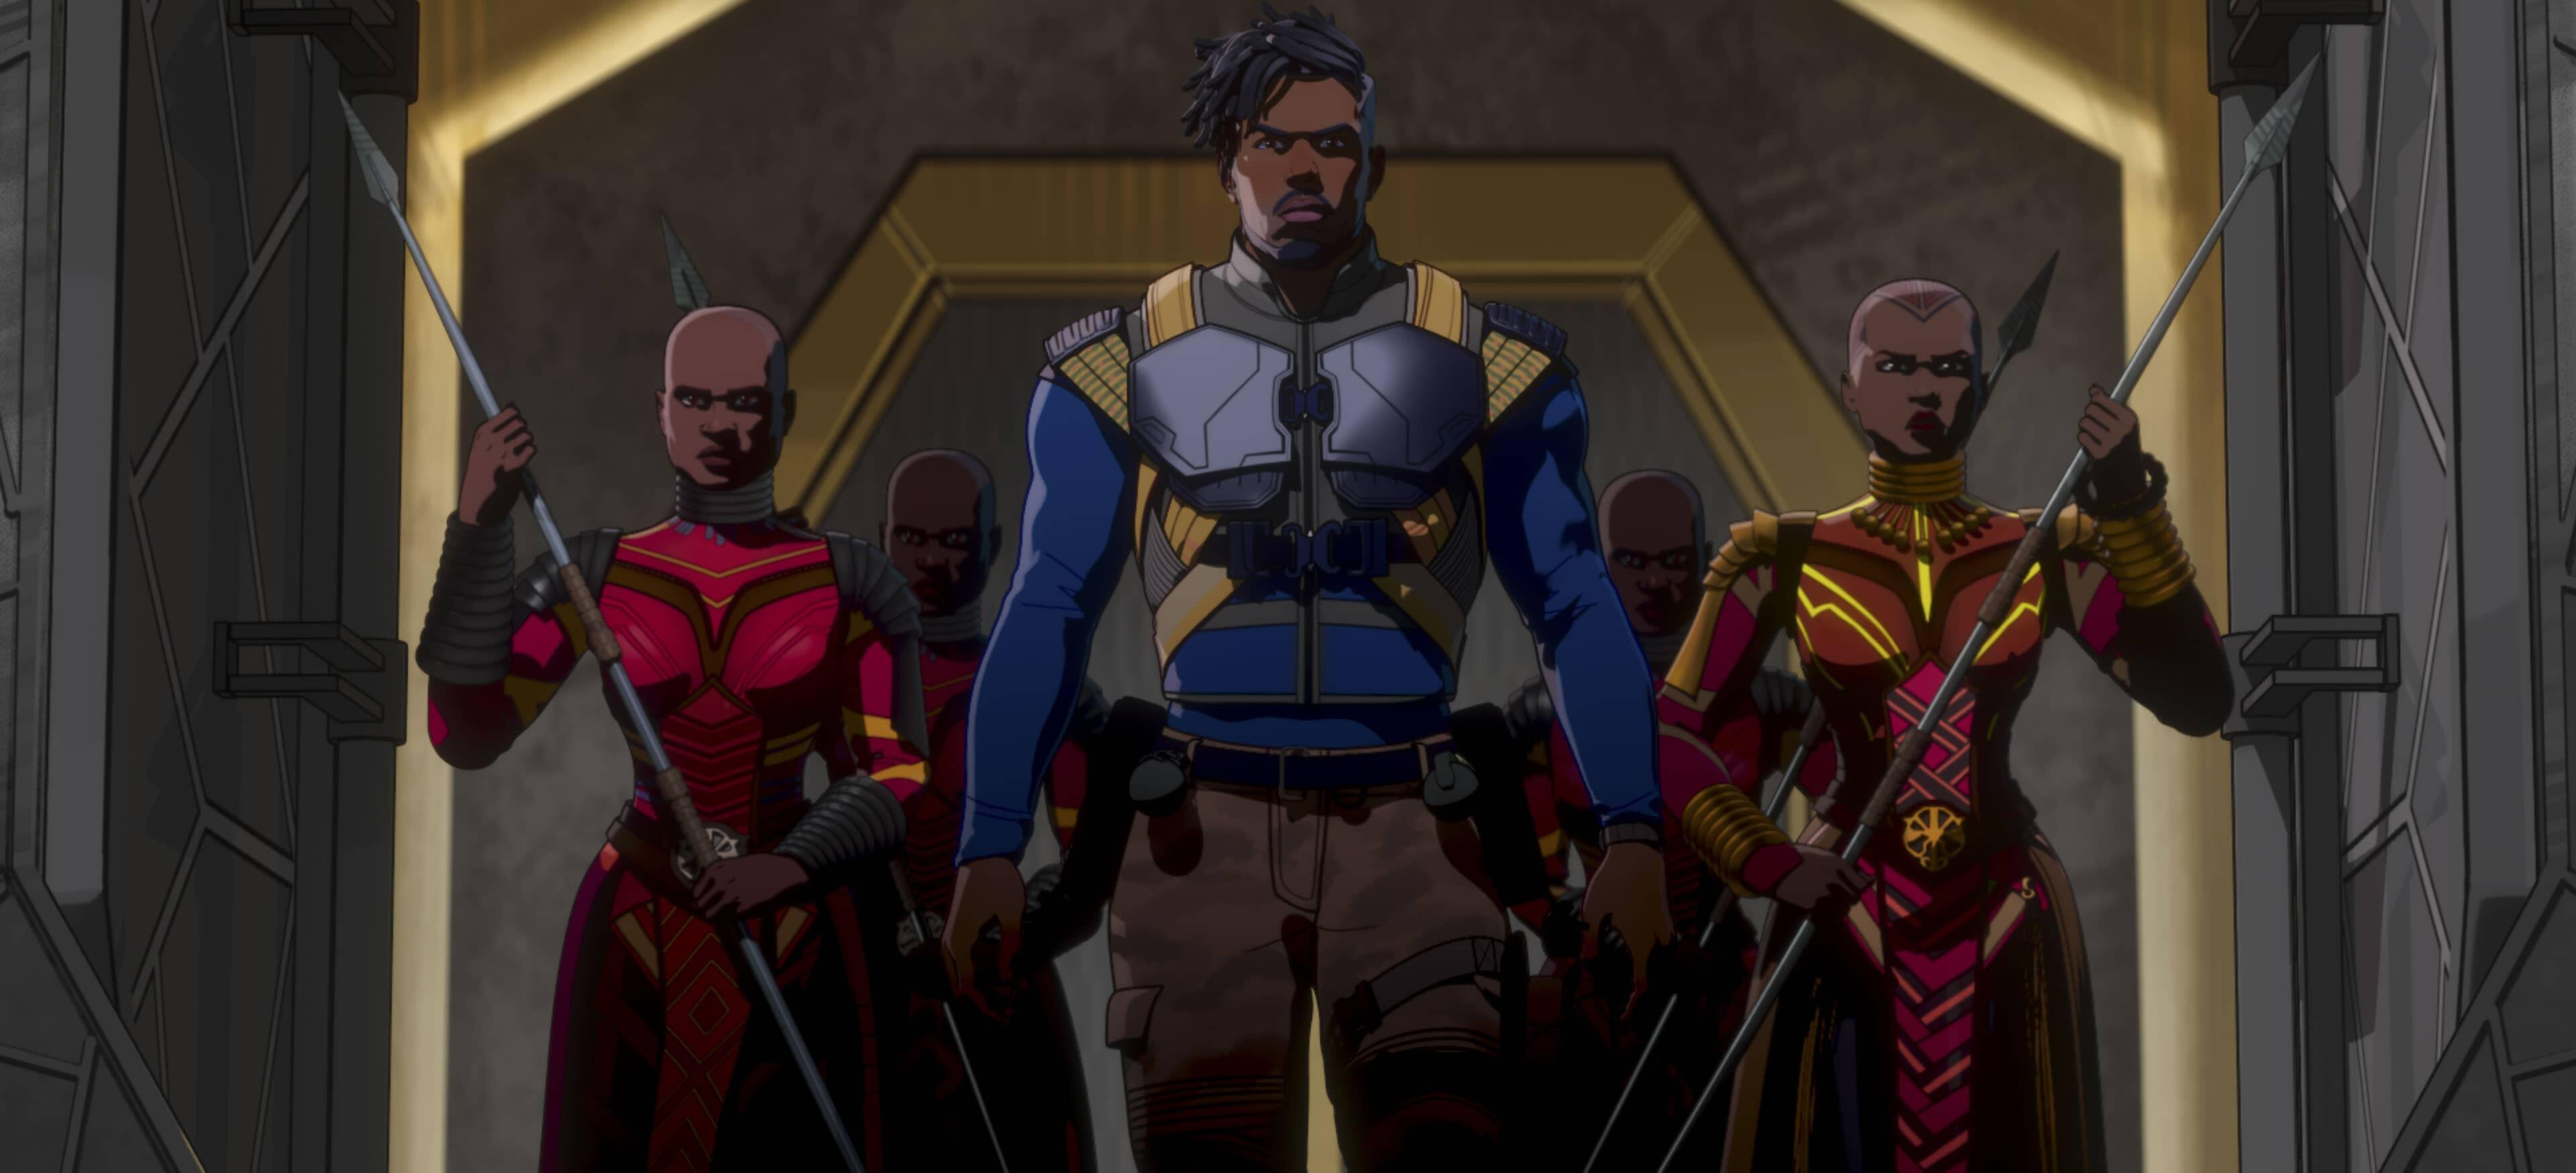 A still from Marvel's What If...? of Killmonger entering Wakanda's throne room surrounded by Dora Milaje